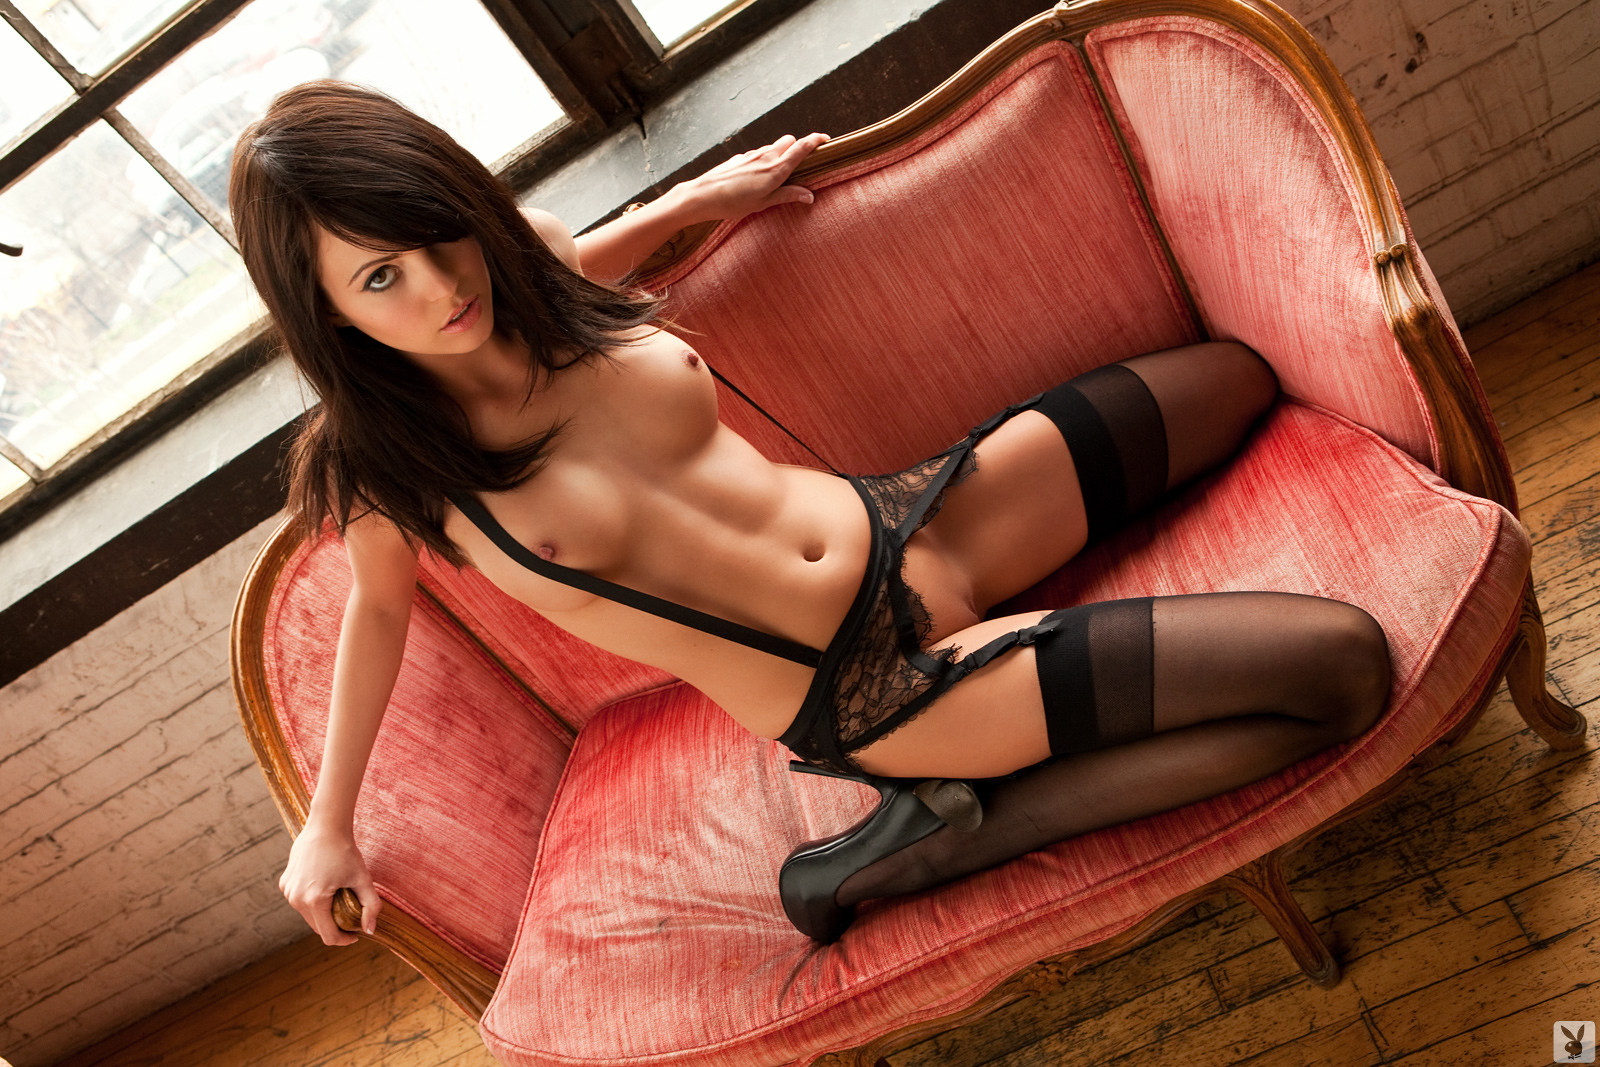 naked-girls-in-stockings-mix-vol6-45